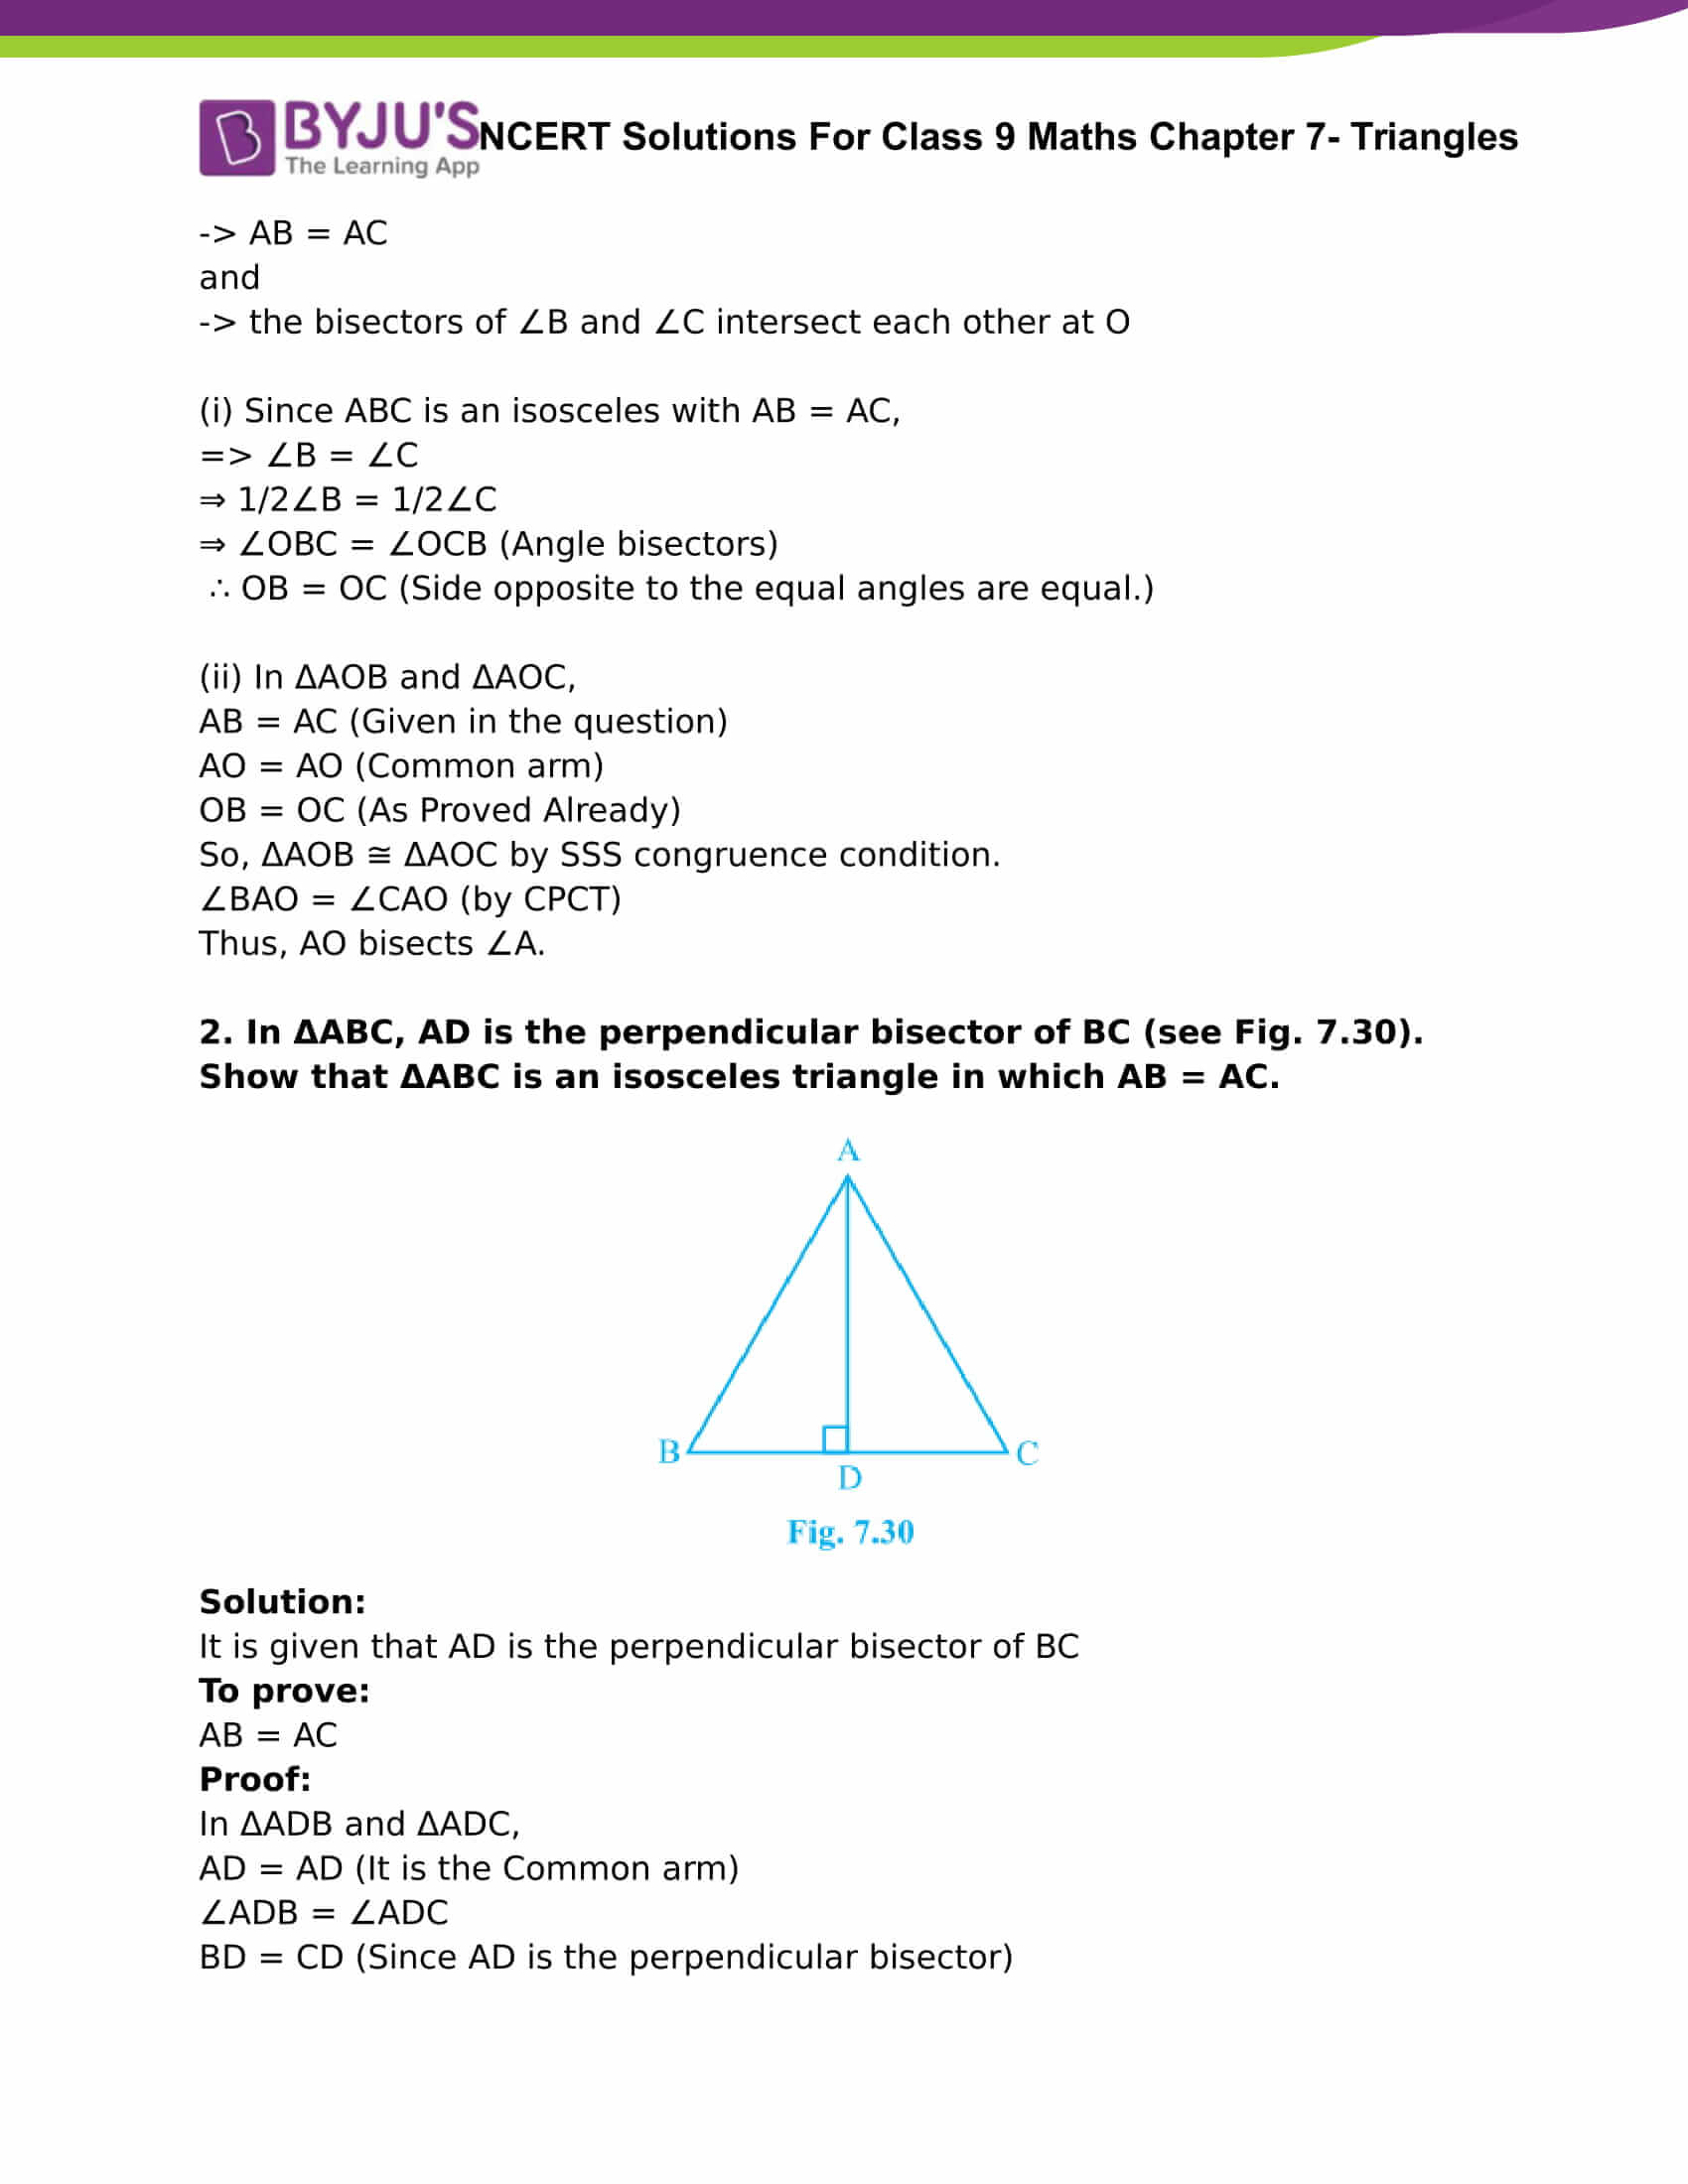 NCERT Solutions For Class 9 Maths Chapter 7 Triangles Part 8